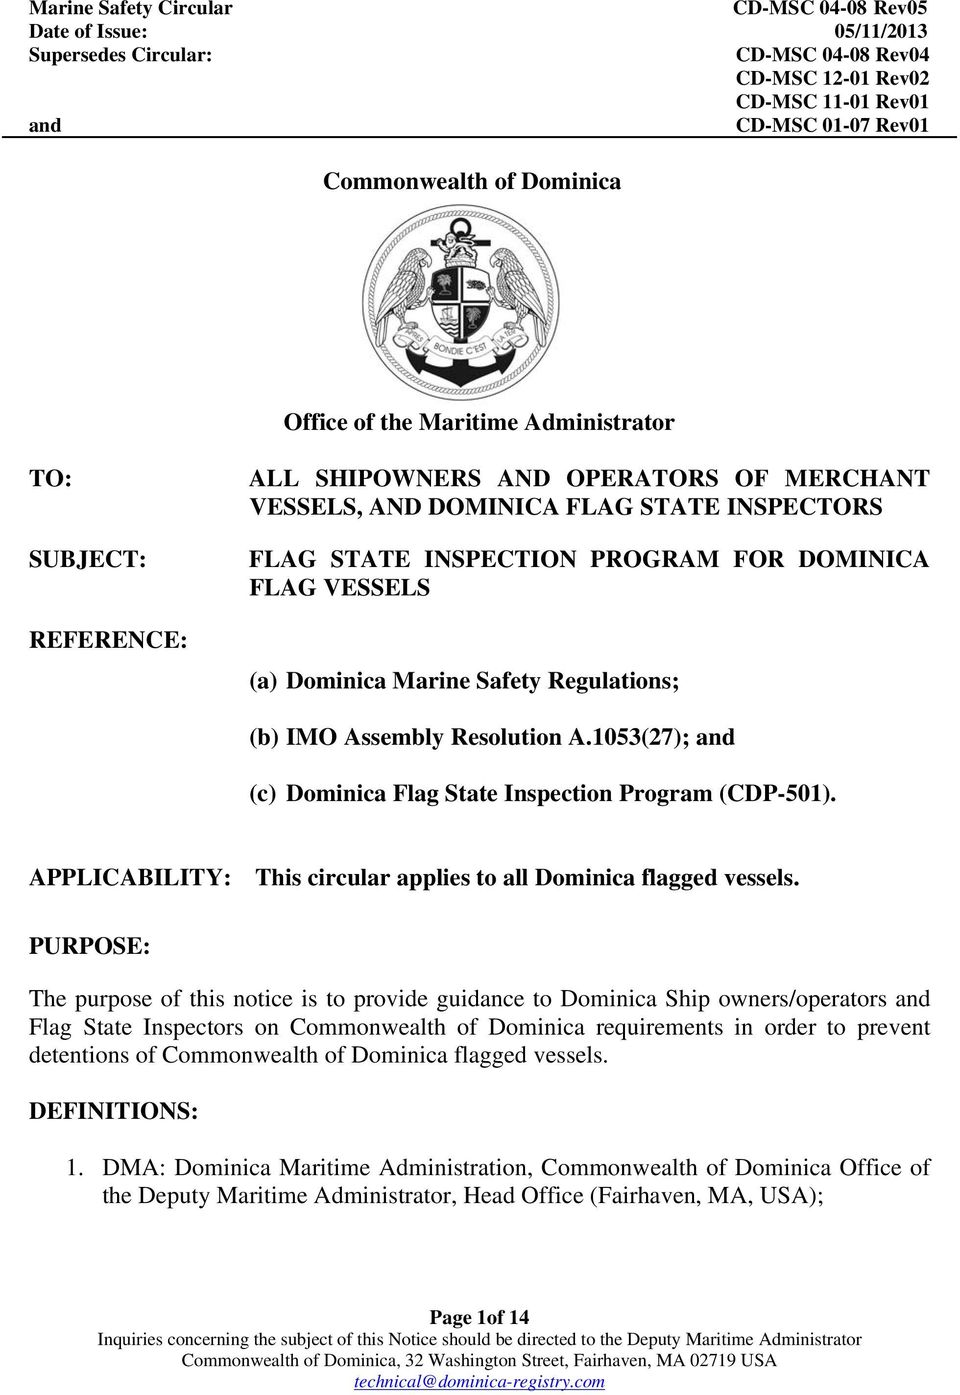 APPLICABILITY: This circular applies to all Dominica flagged vessels.